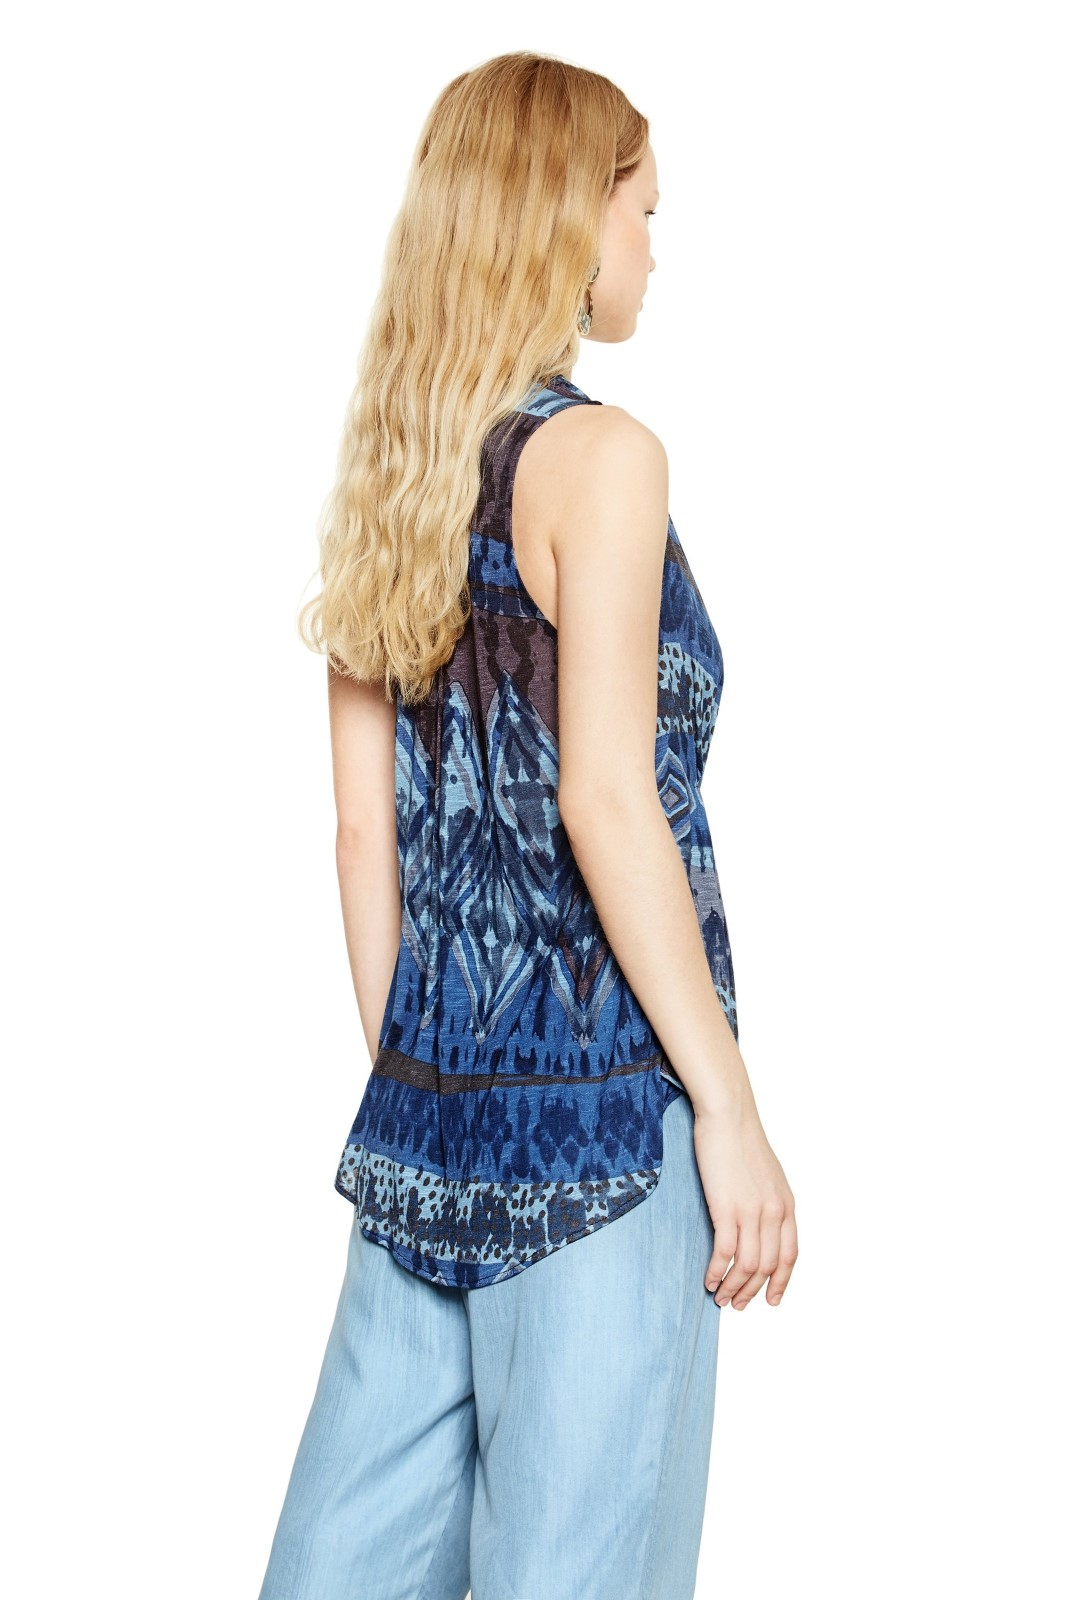 save up to 80% pretty cool cheap Desigual blue atypical top Gautier